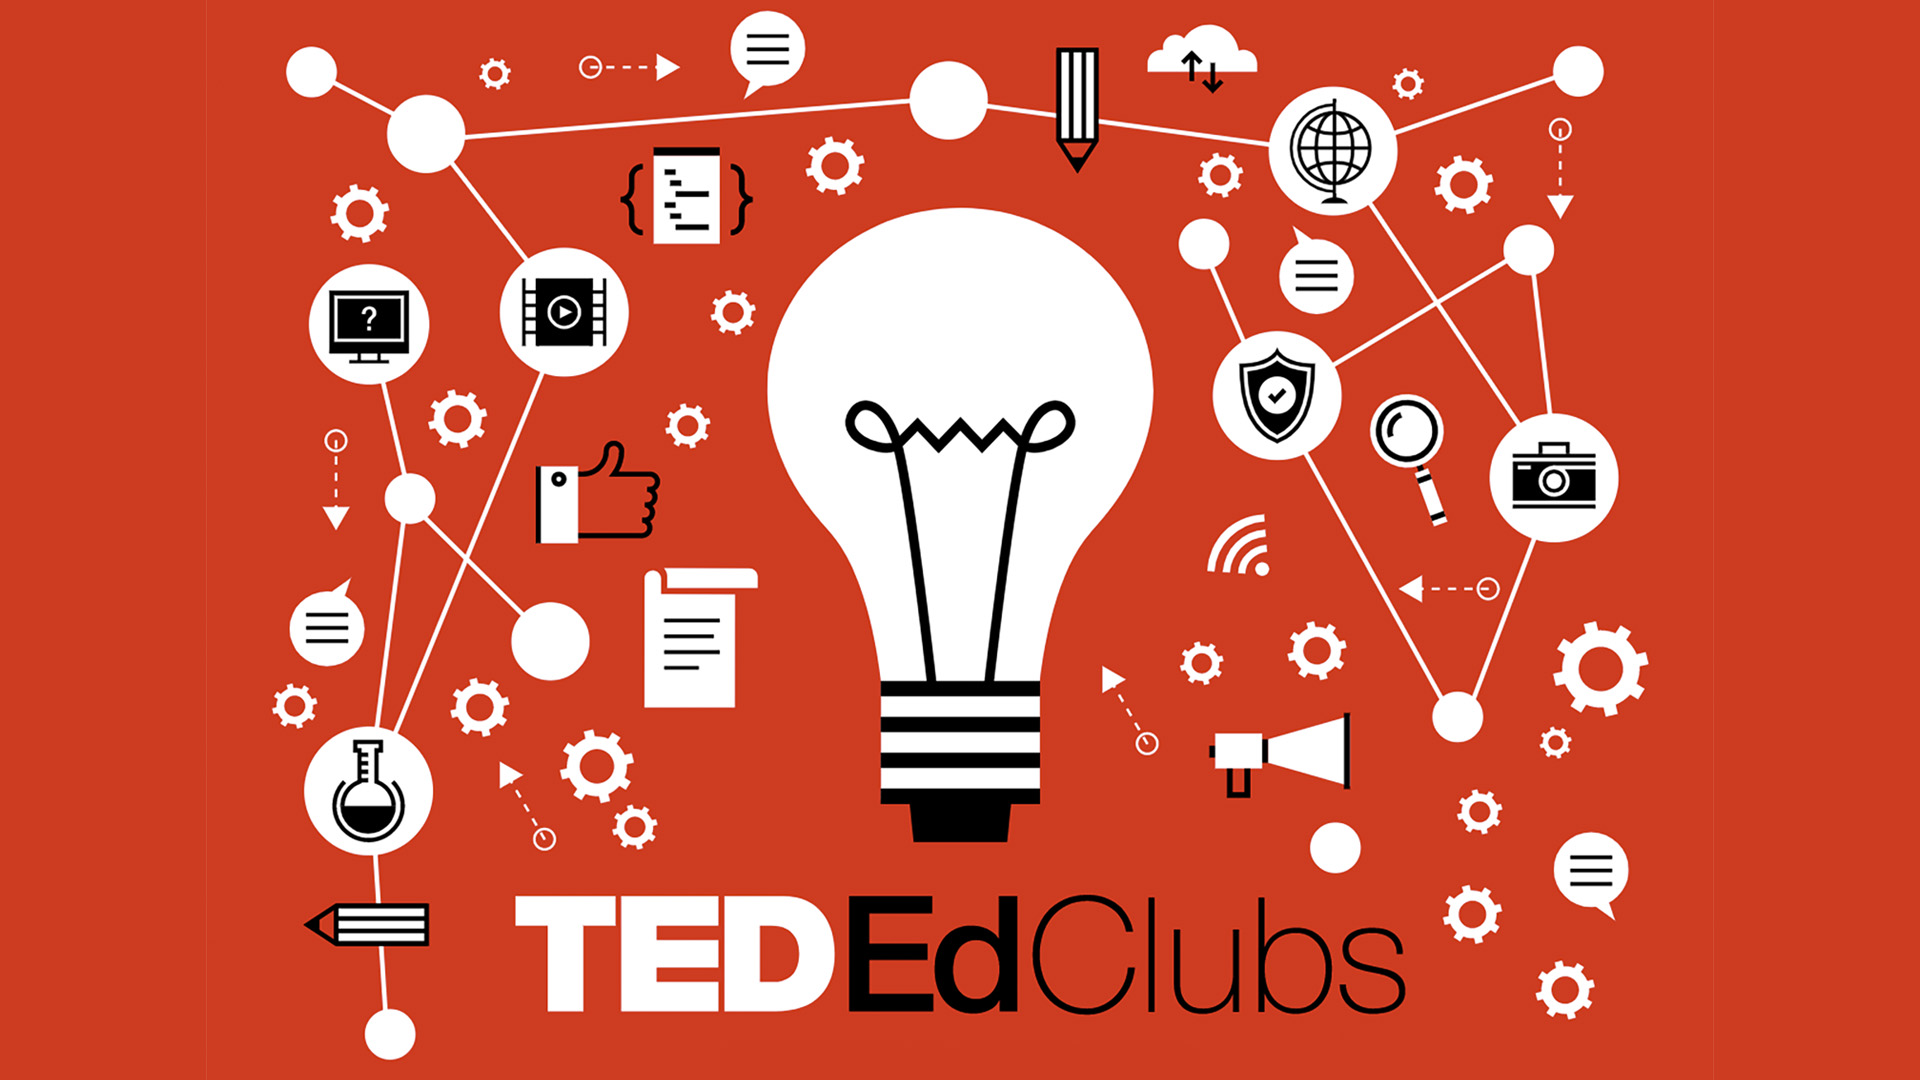 6 ways to use TED-Ed Clubs in and out of school